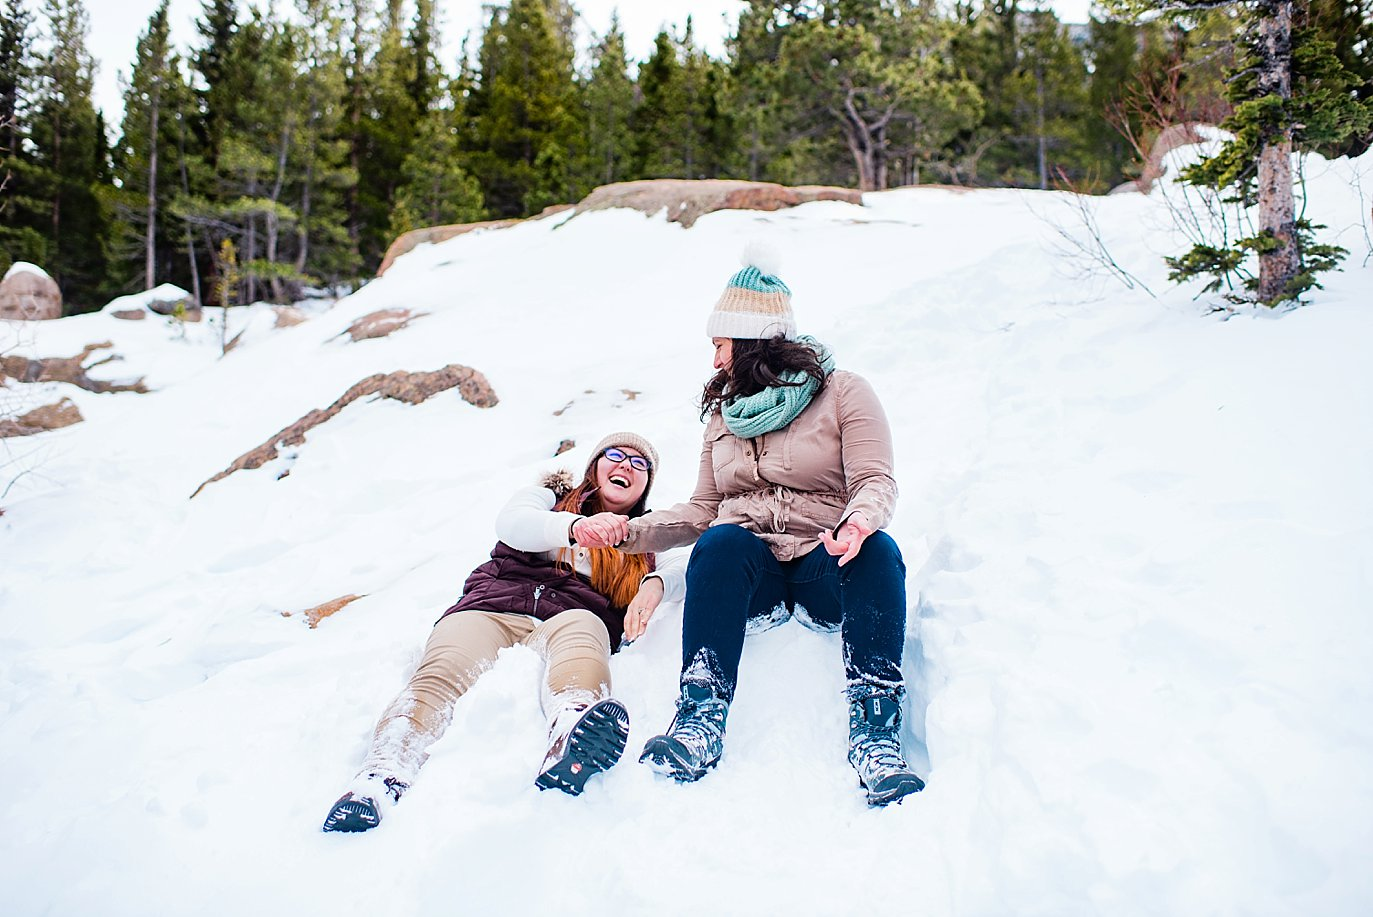 queer couple sliding down snow on butts Alberta Falls Rocky Mountain National Park winter hiking engagement by Boulder engagement photographer Jennie Crate, Photographer